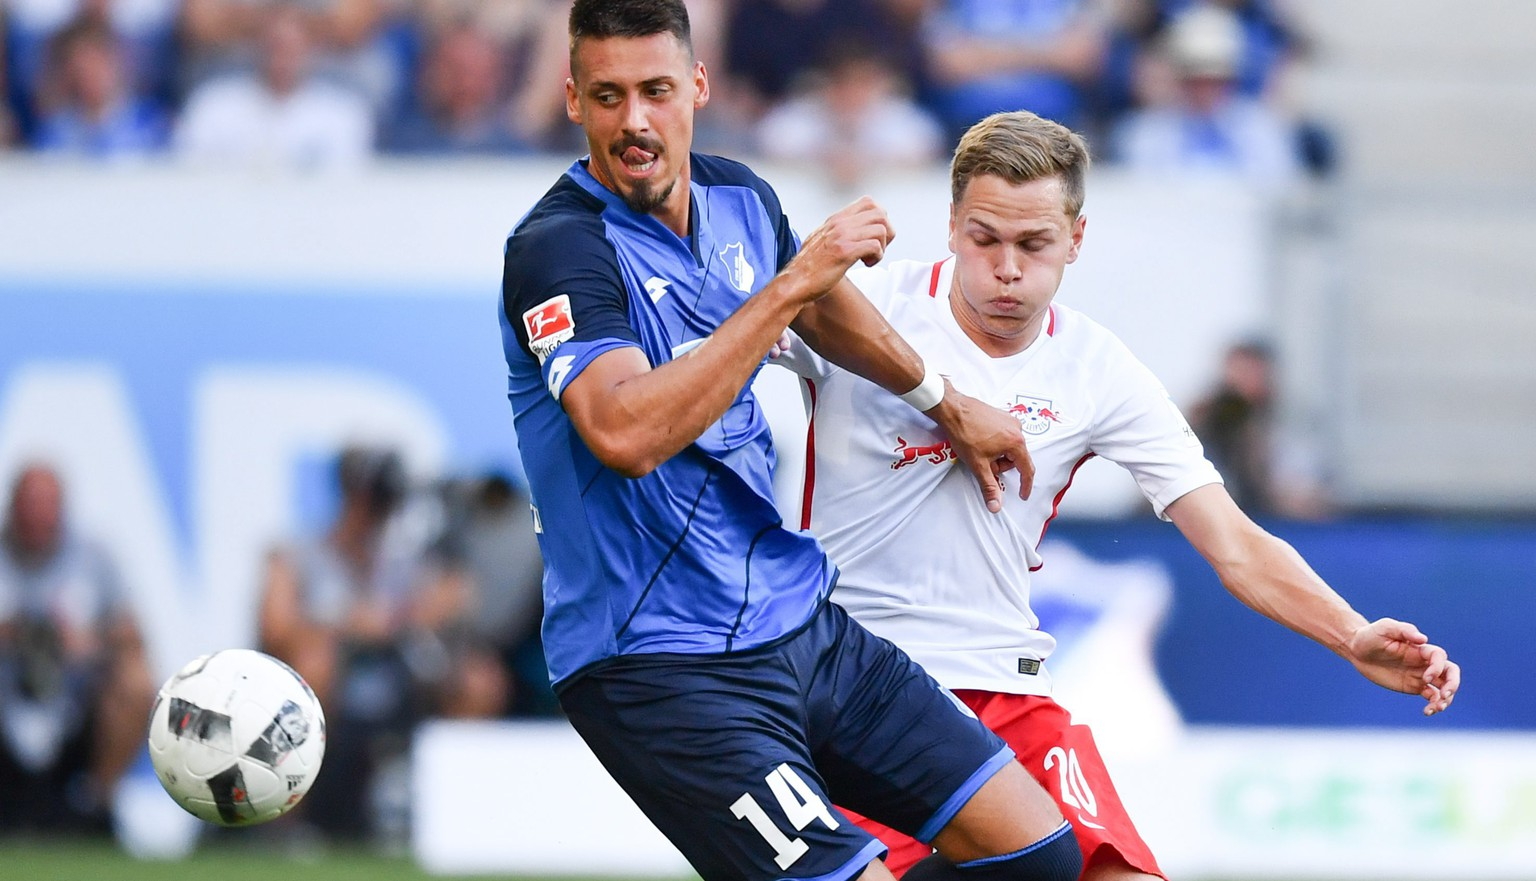 epa05513196 Hoffenheims Sandro Wagner (l) and Leipzig's Benno Schmitz  vie for the ball during the German Bundesliga soccer match between 1899 Hoffenheim and RB Leipzig in the Rhien Neckar Arena in Sinsheim, Germany, 28 August 2016. 